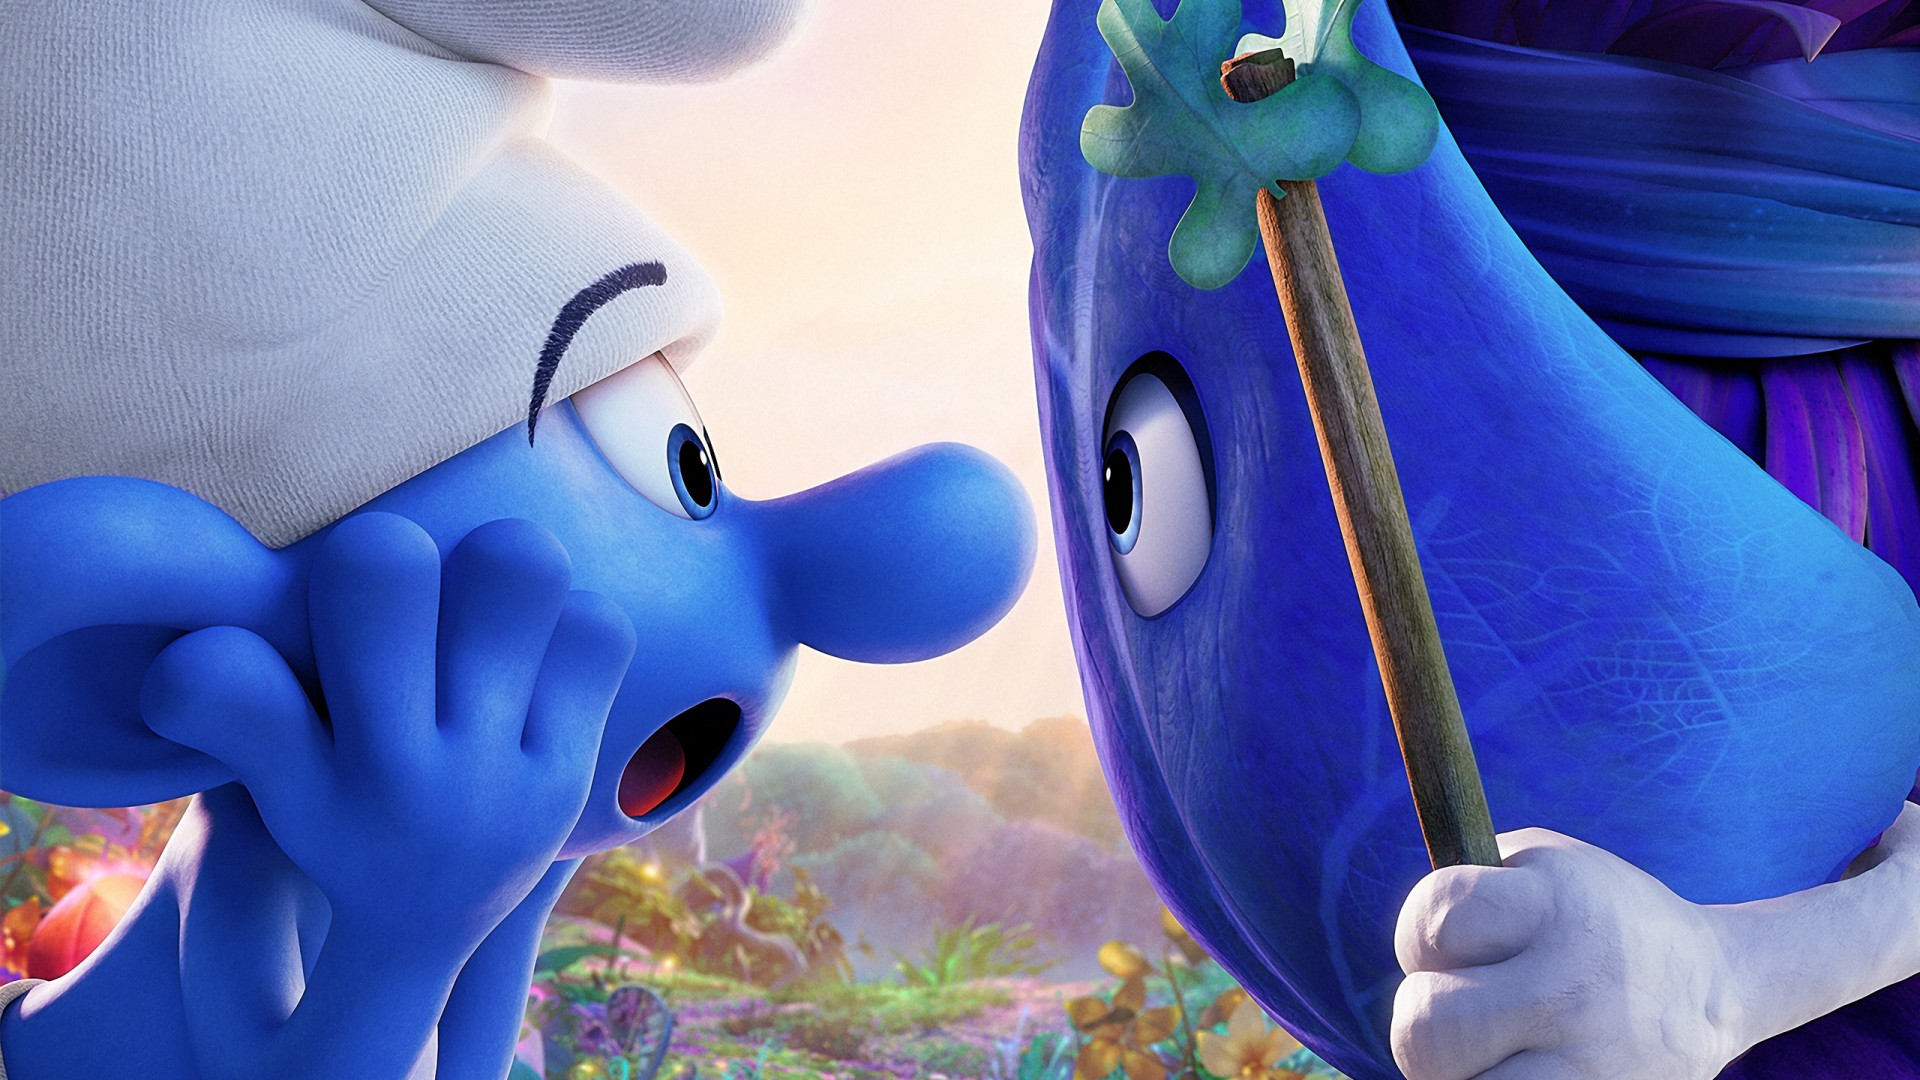 Smurf Wallpaper 3d Smurfs The Lost Village Hefty Smurf Wallpapers Hd